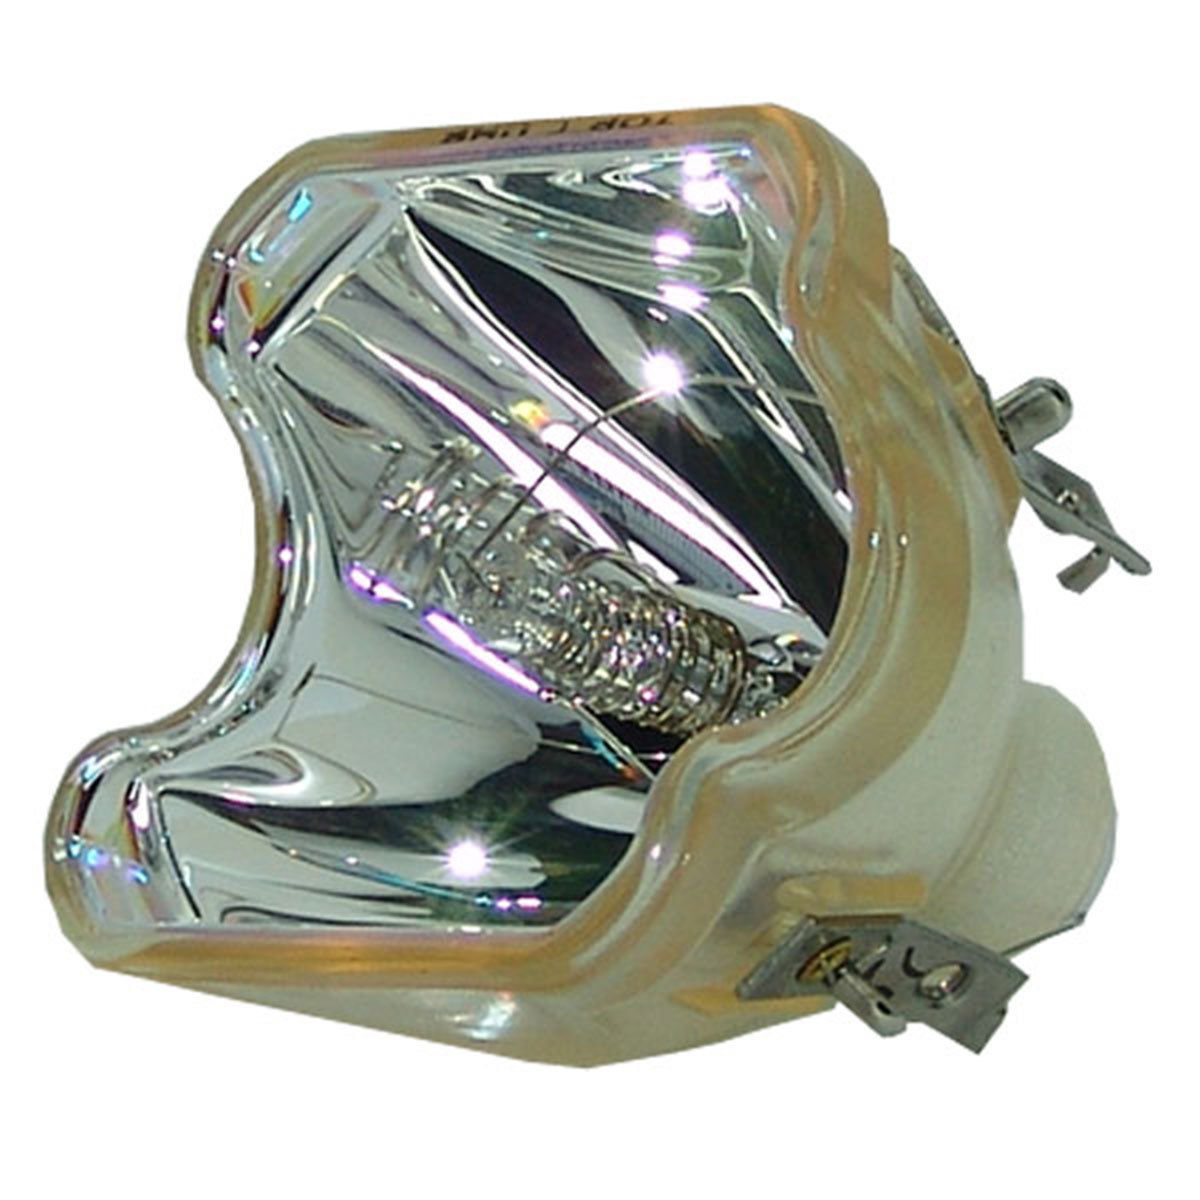 ФОТО Compatible Bare Bulb DT00731 for HITACHI CP-S240 CP-S245 CP-X250 CP-X255 ED-S84 ED-X8250 ED-X8255 Projector Lamp without Case